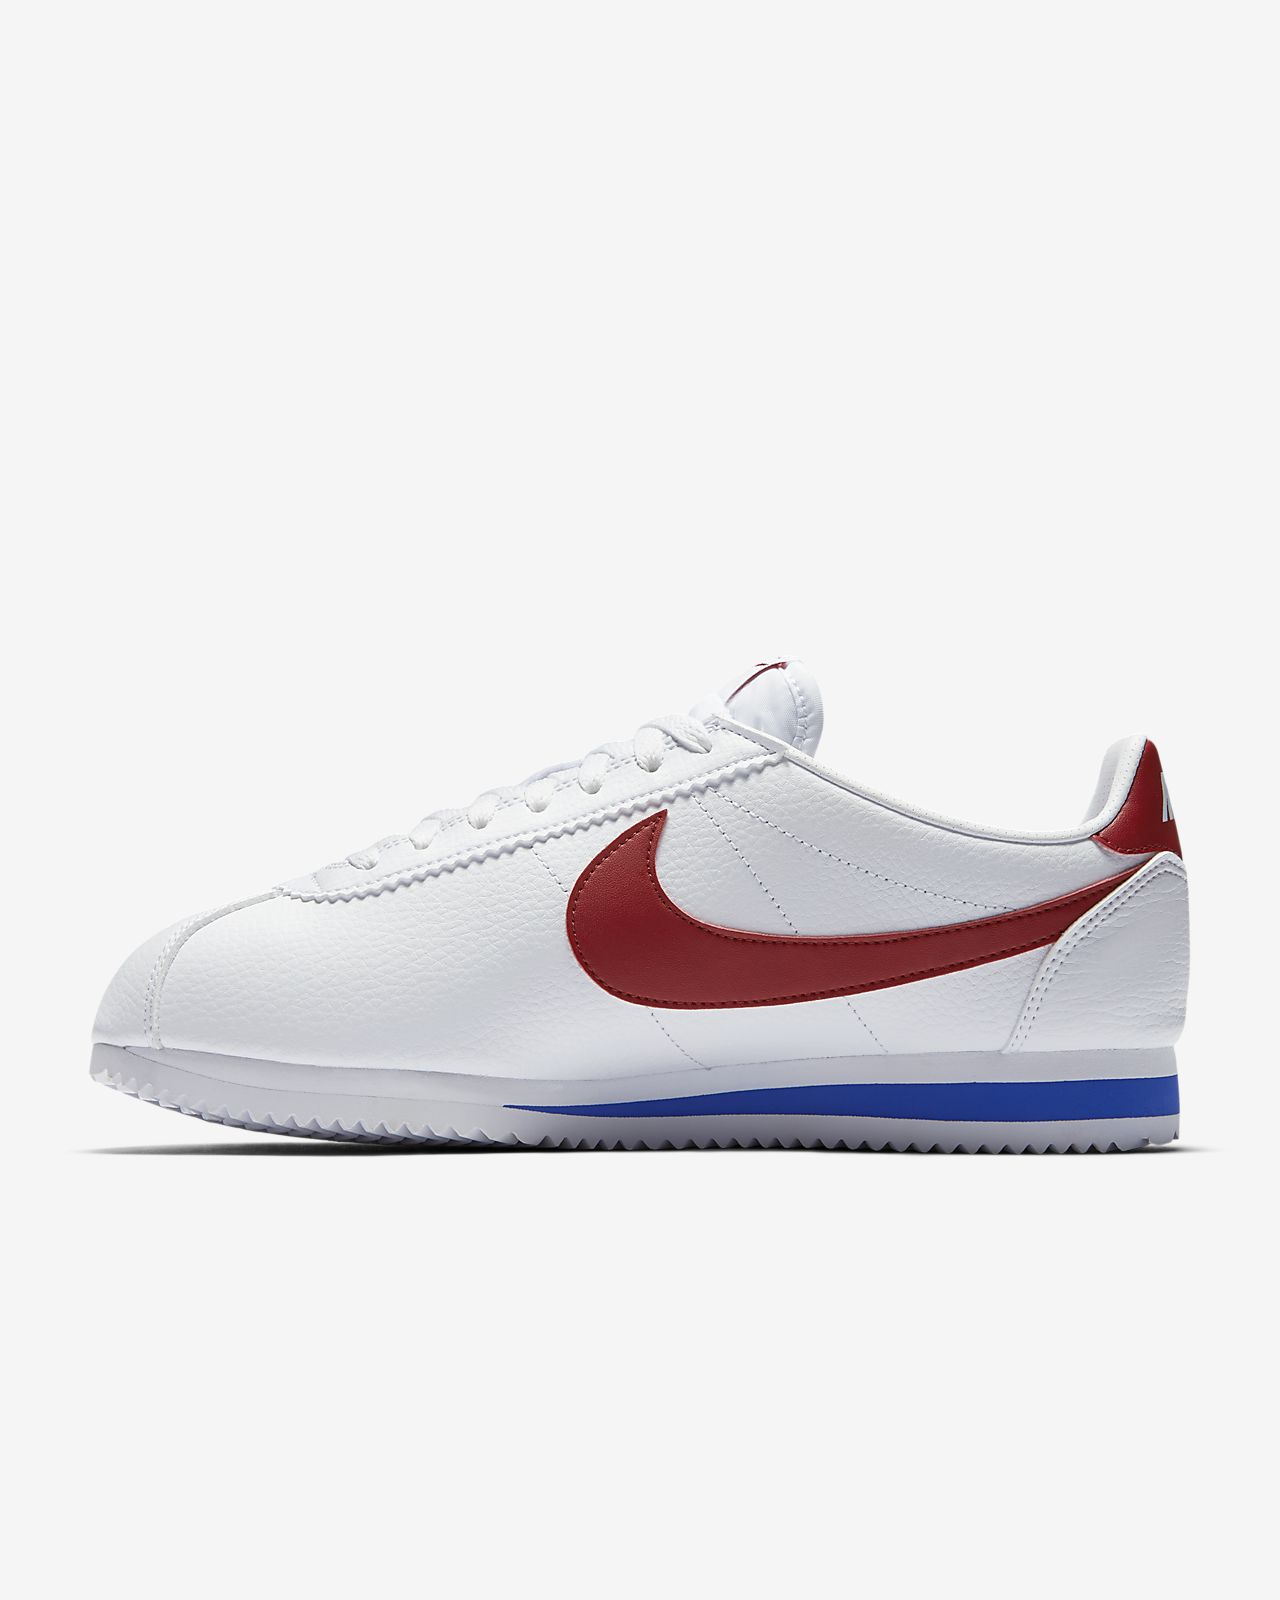 exquisite style 100% high quality where to buy Chaussure Nike Classic Cortez pour Homme